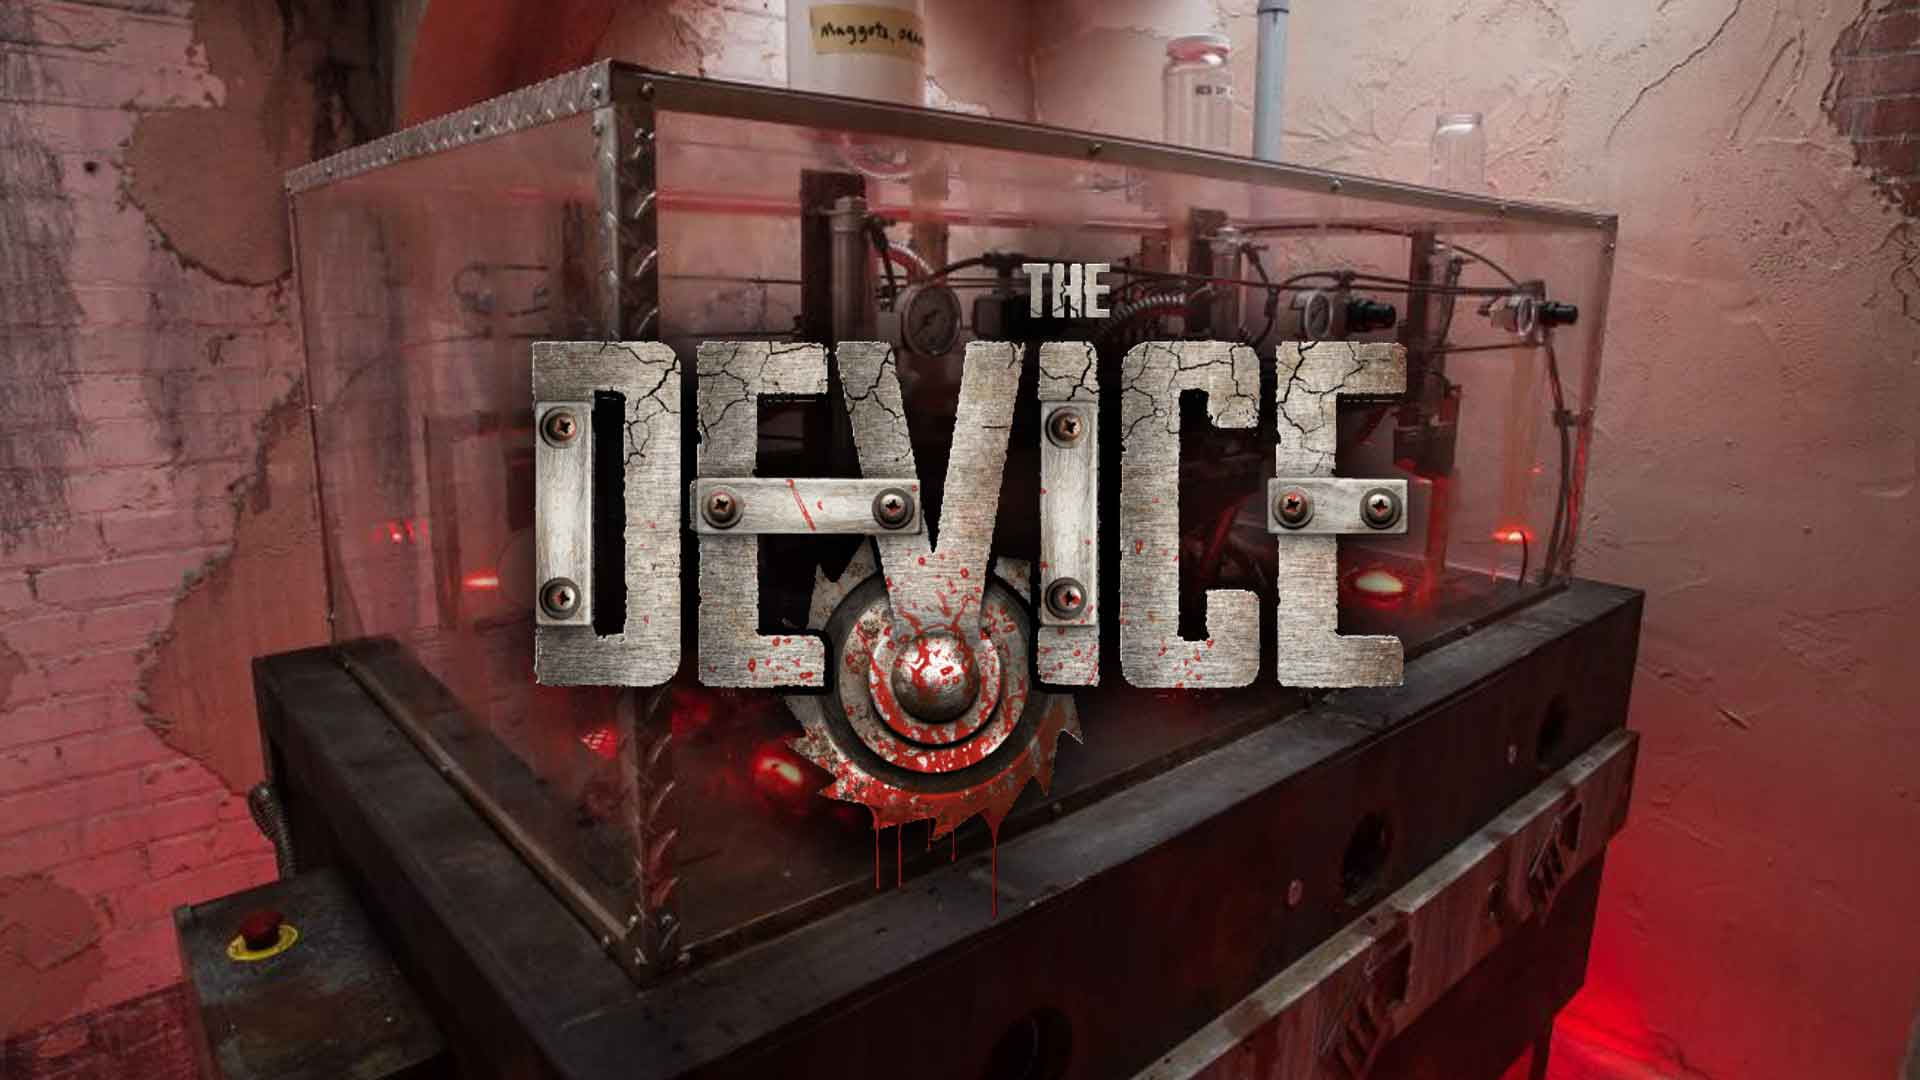 The Device 5 minute escape